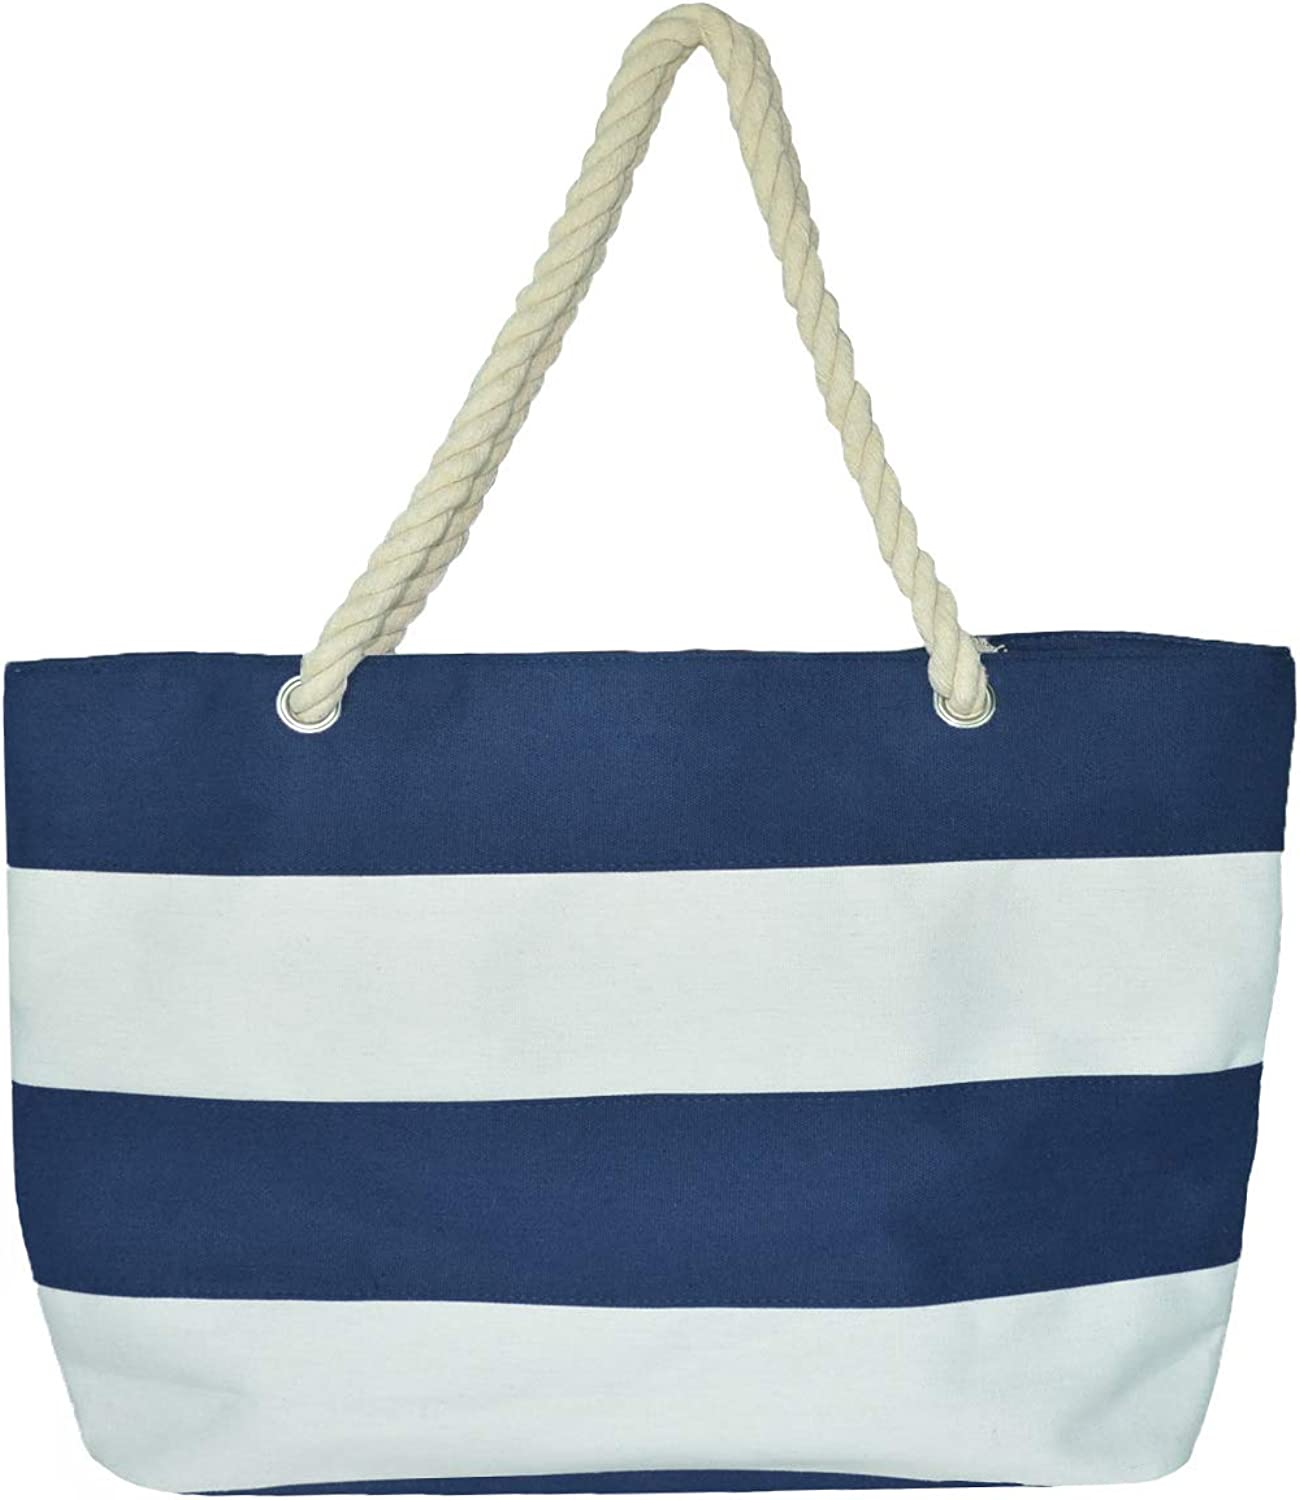 Beach Bag with Inner Zipper Canvas Tote Bags for Women (XLarge, Navy bluee)